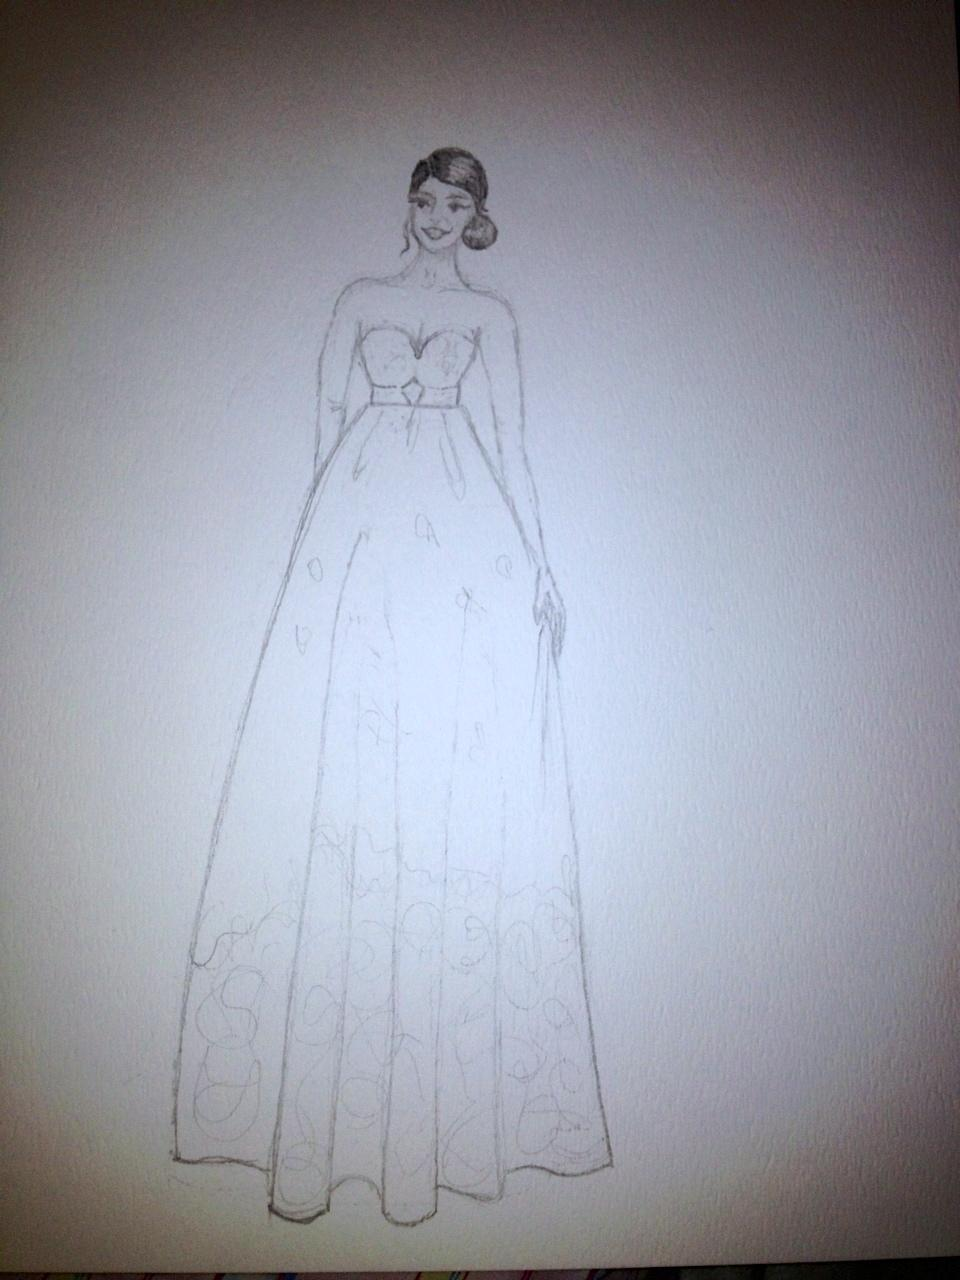 FINAL ~ EMBELLISHED ~ WATERCOLOR ~ SKETCHES ~ Feminine Ways - image 9 - student project